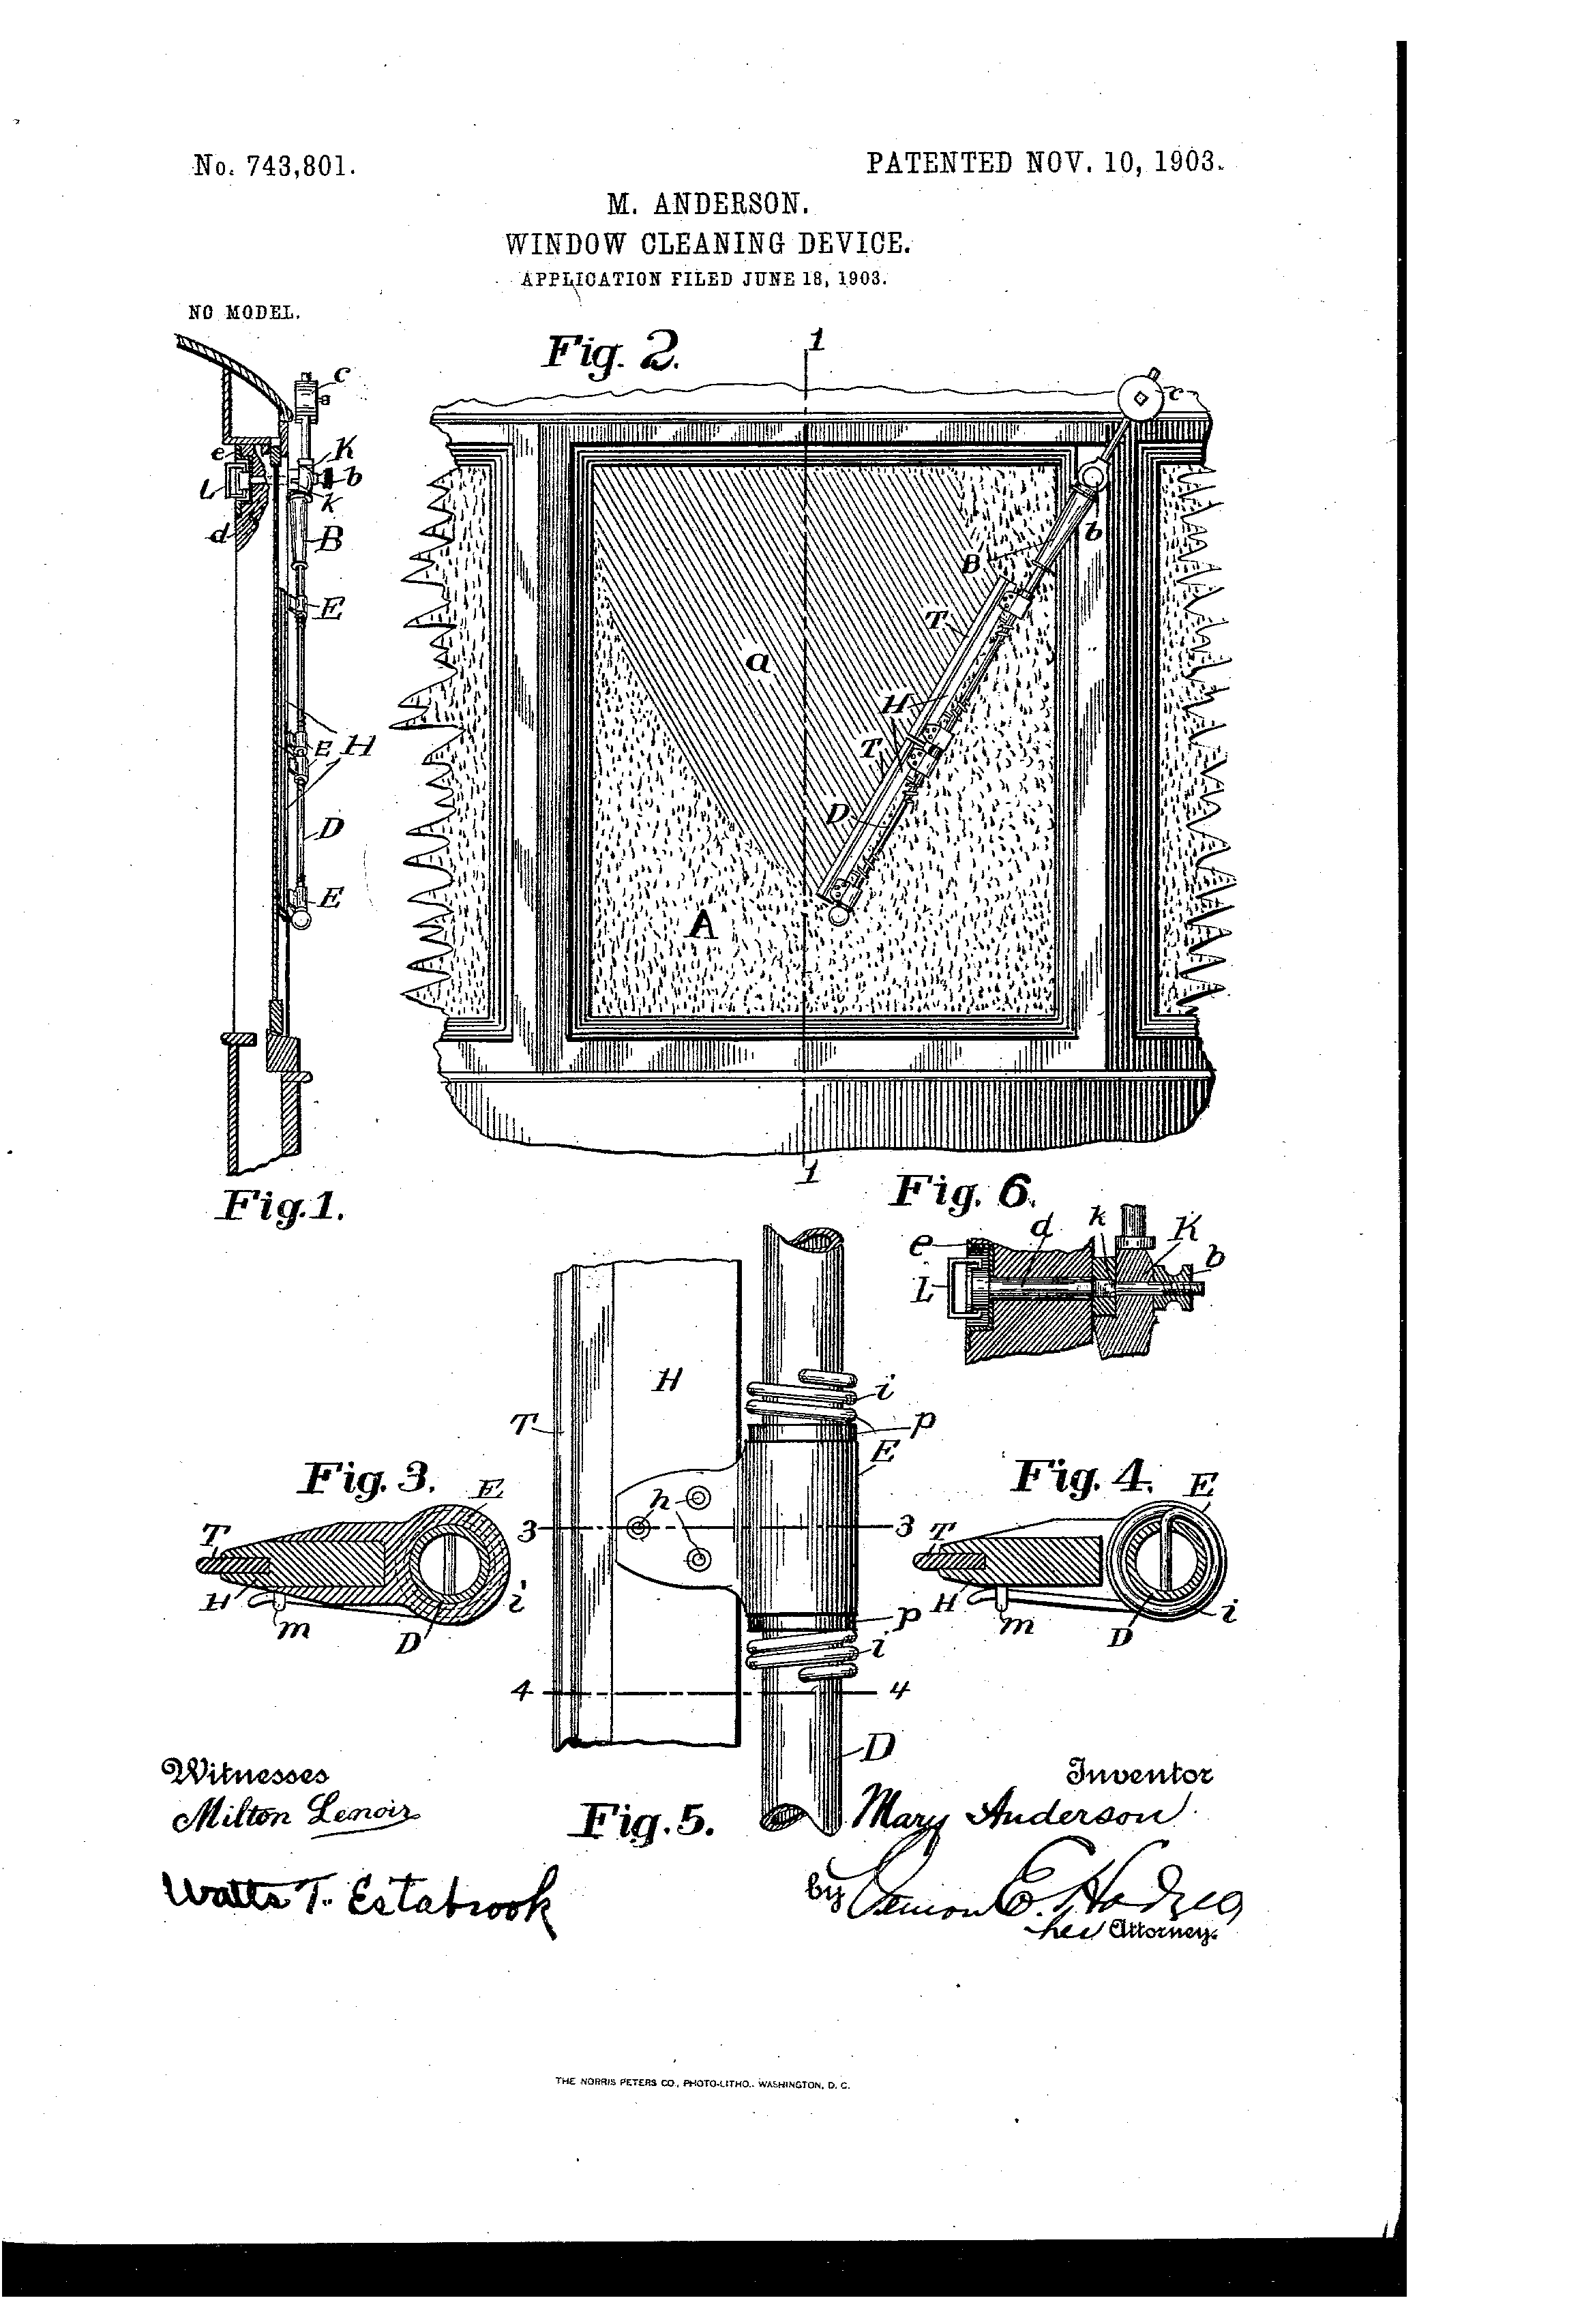 Windscreen Wiper Wikipedia Schematic Of Rain Sensor Circuit Andersons 1903 Window Cleaner Design